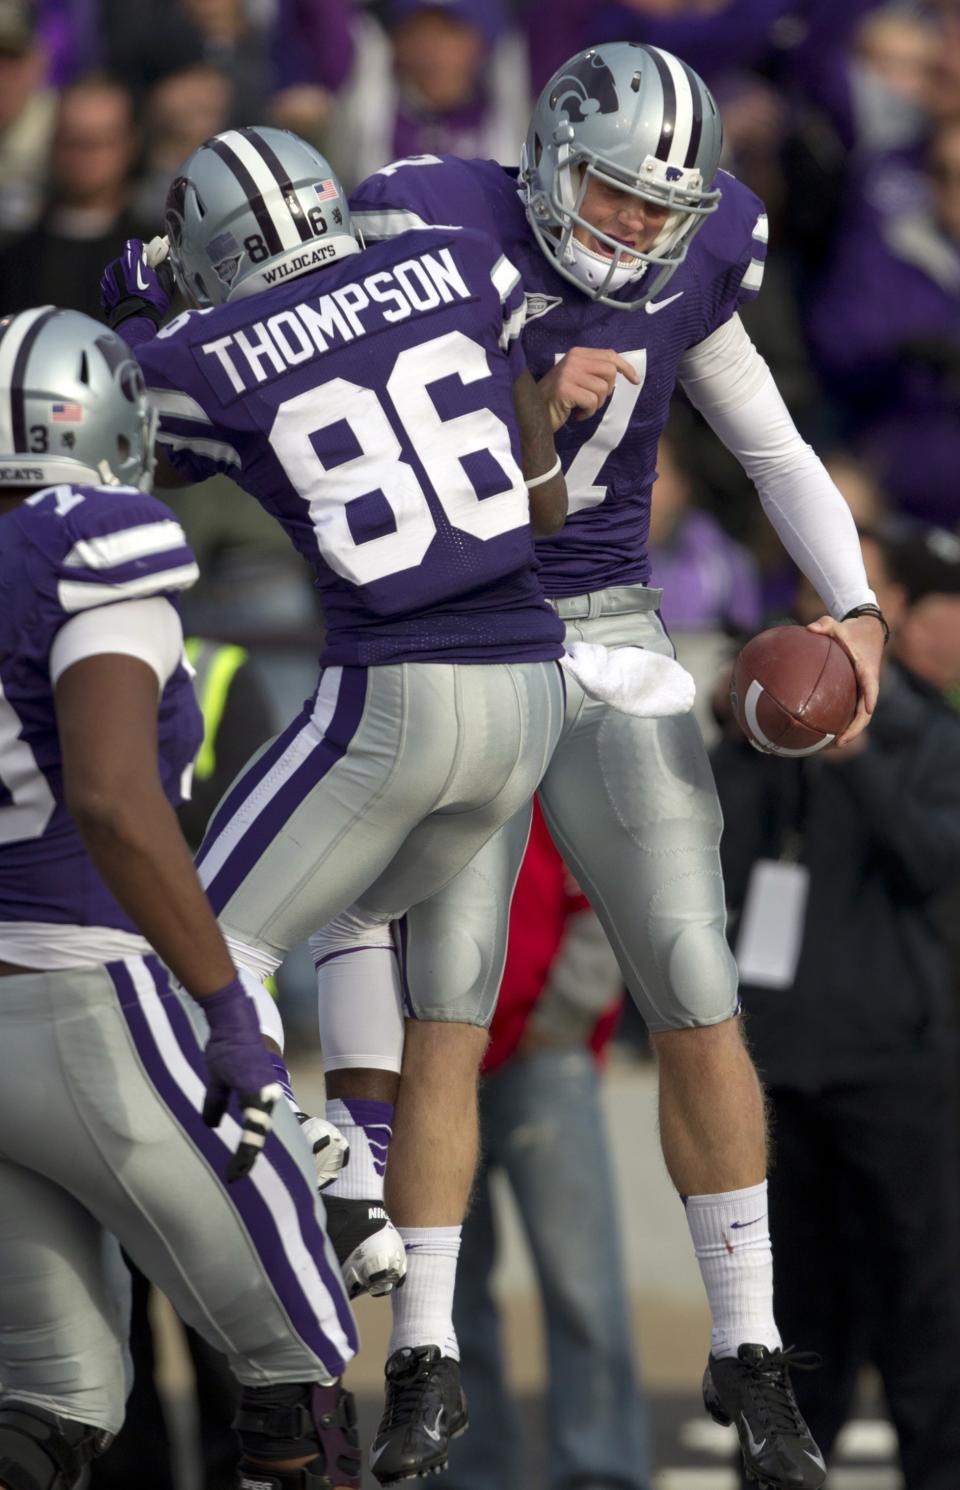 Kansas State quarterback Collin Klein (7) celebrates a touchdown with wide receiver Tramaine Thompson (86) during the second half of an NCAA college football game against Texas Tech in Manhattan, Kan., Saturday, Oct. 27, 2012. (AP Photo/Orlin Wagner)